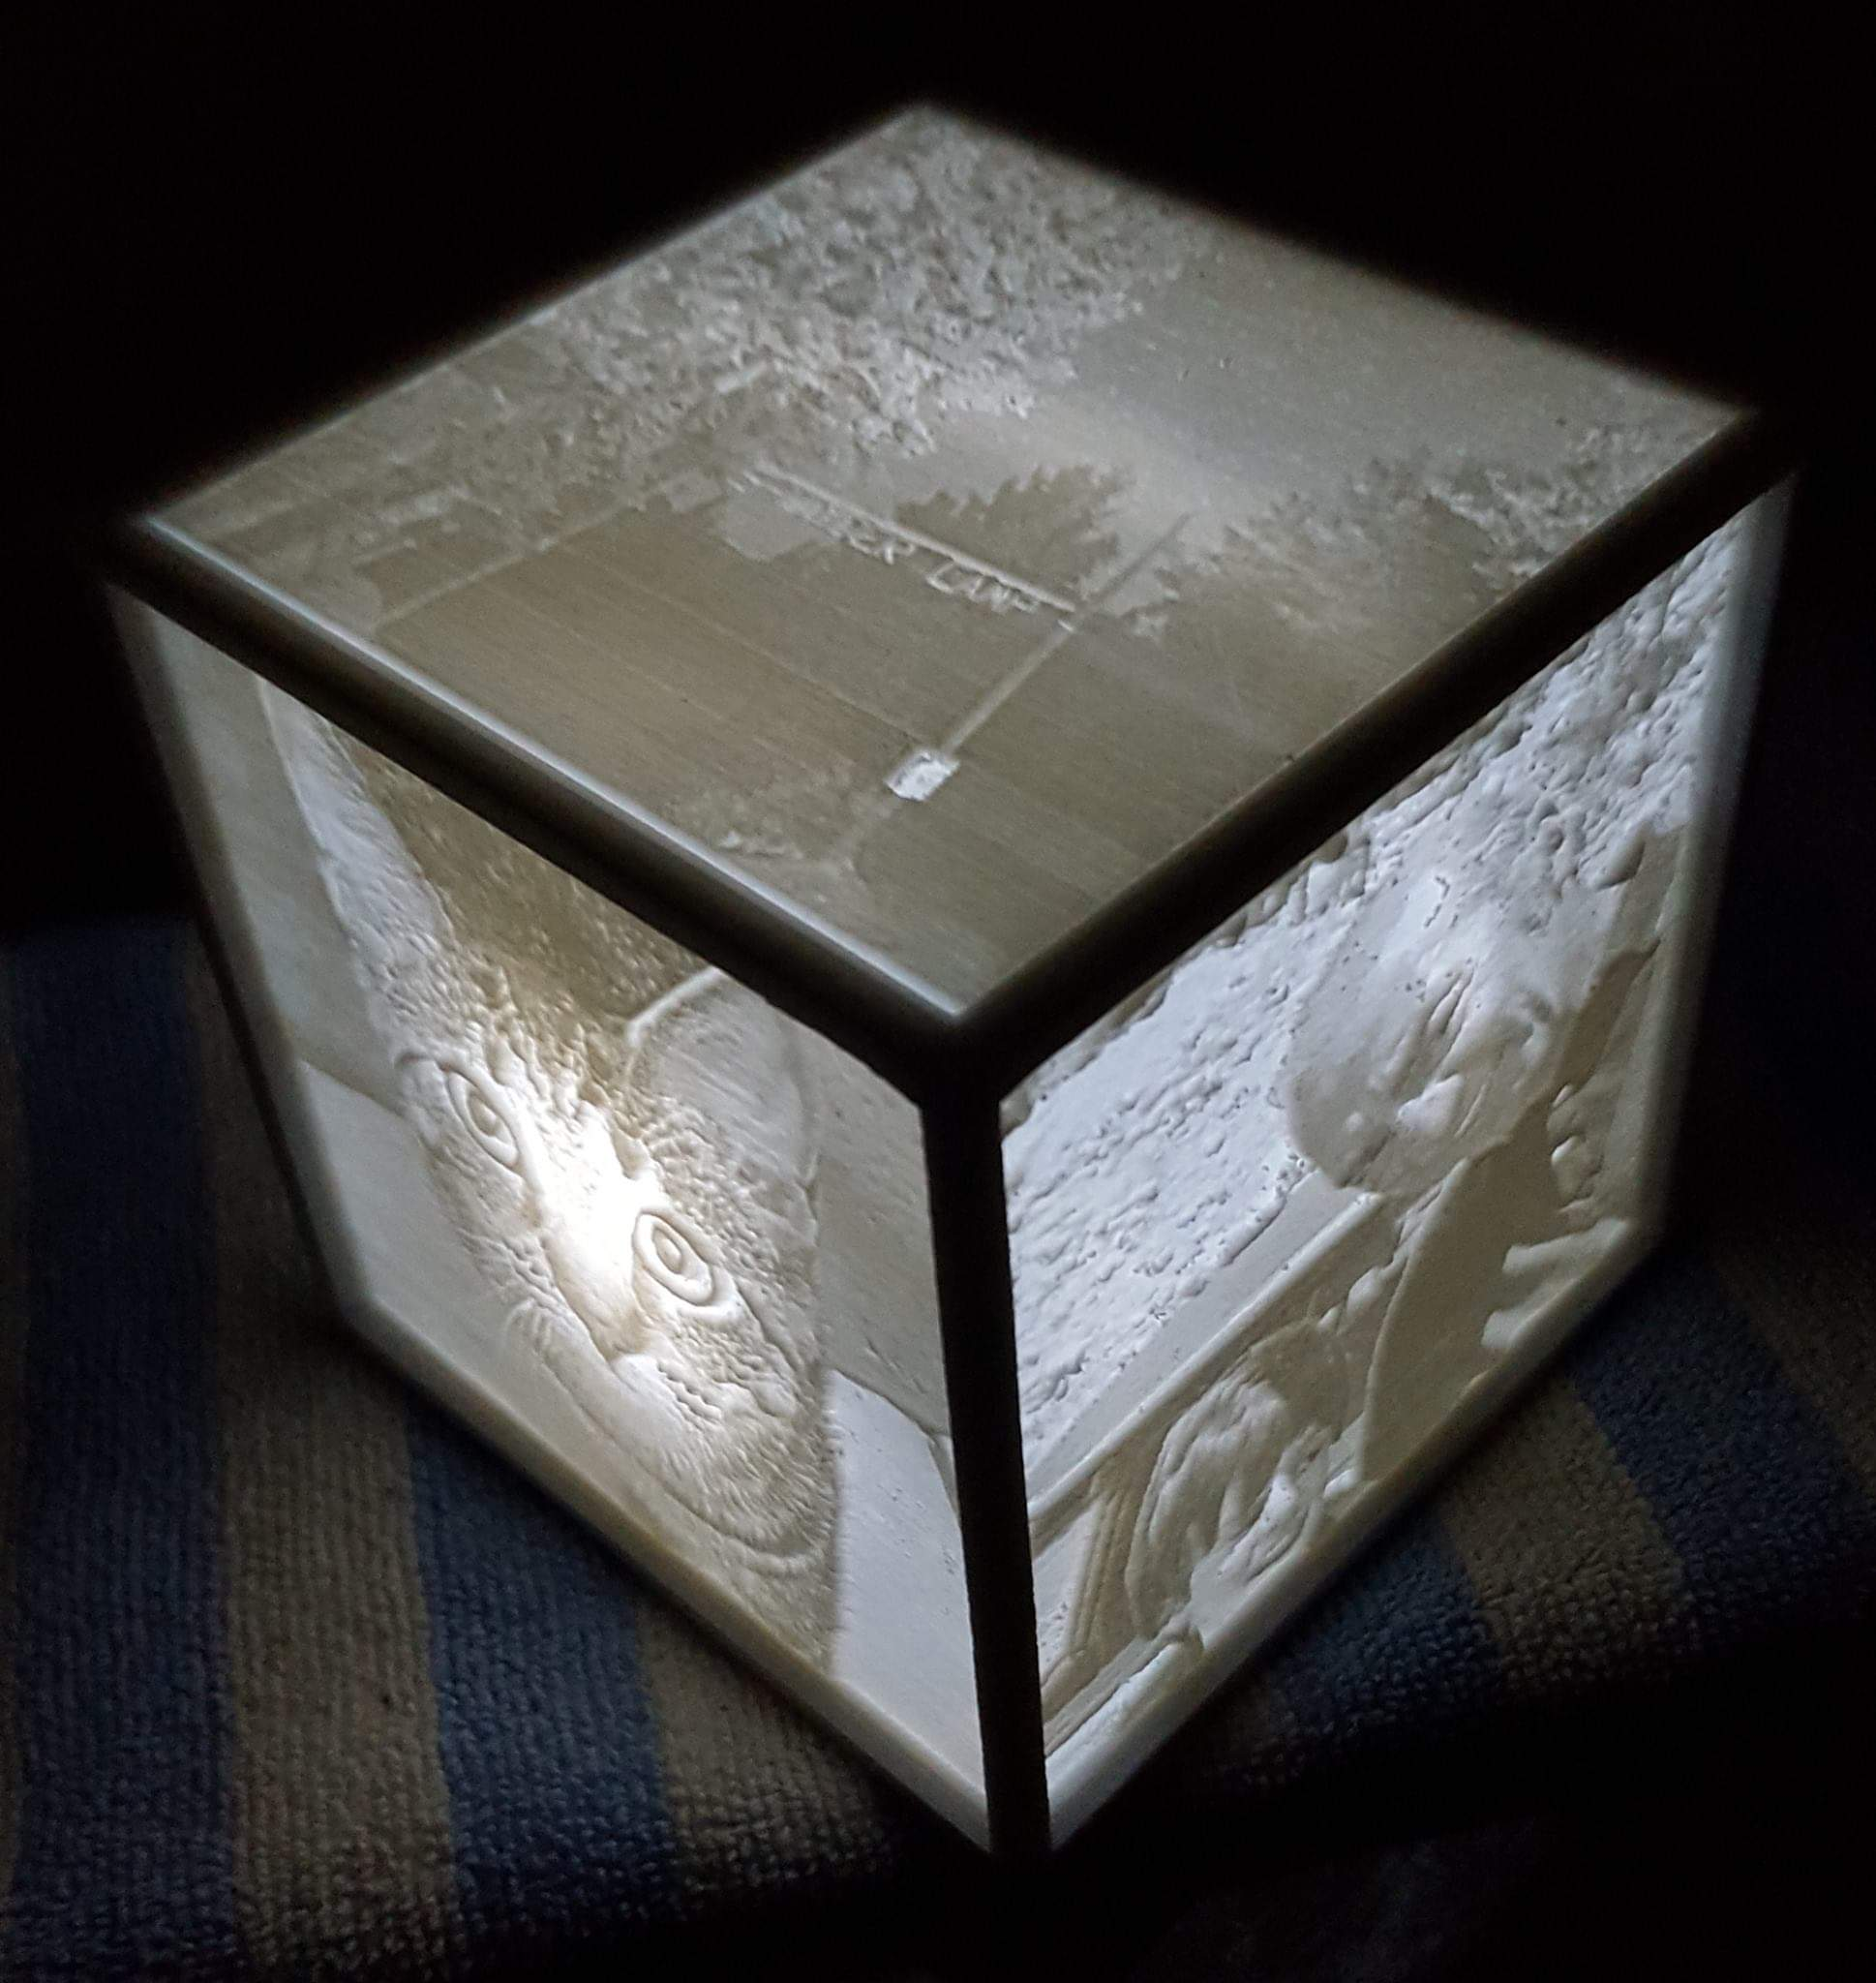 images/Lithophane Light Box Schematic.jpg